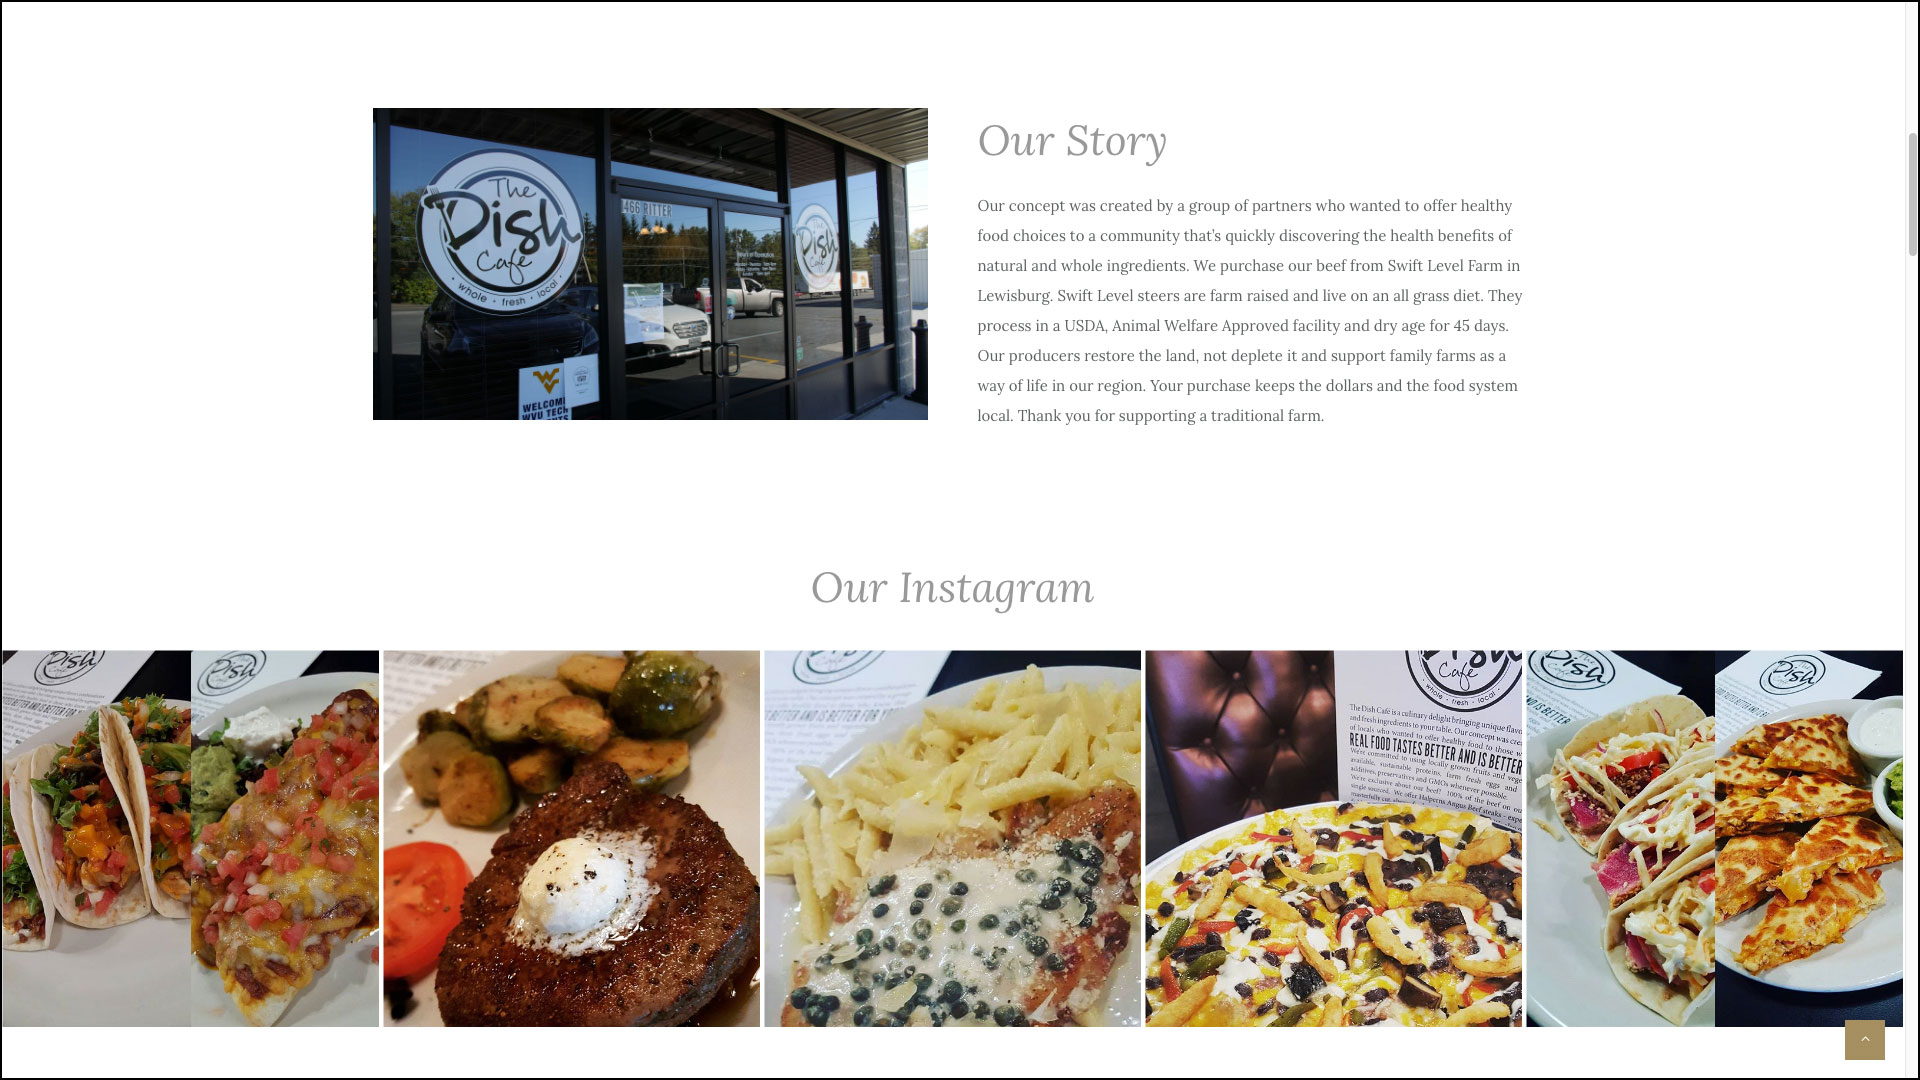 the dish cafe web site instagram and about